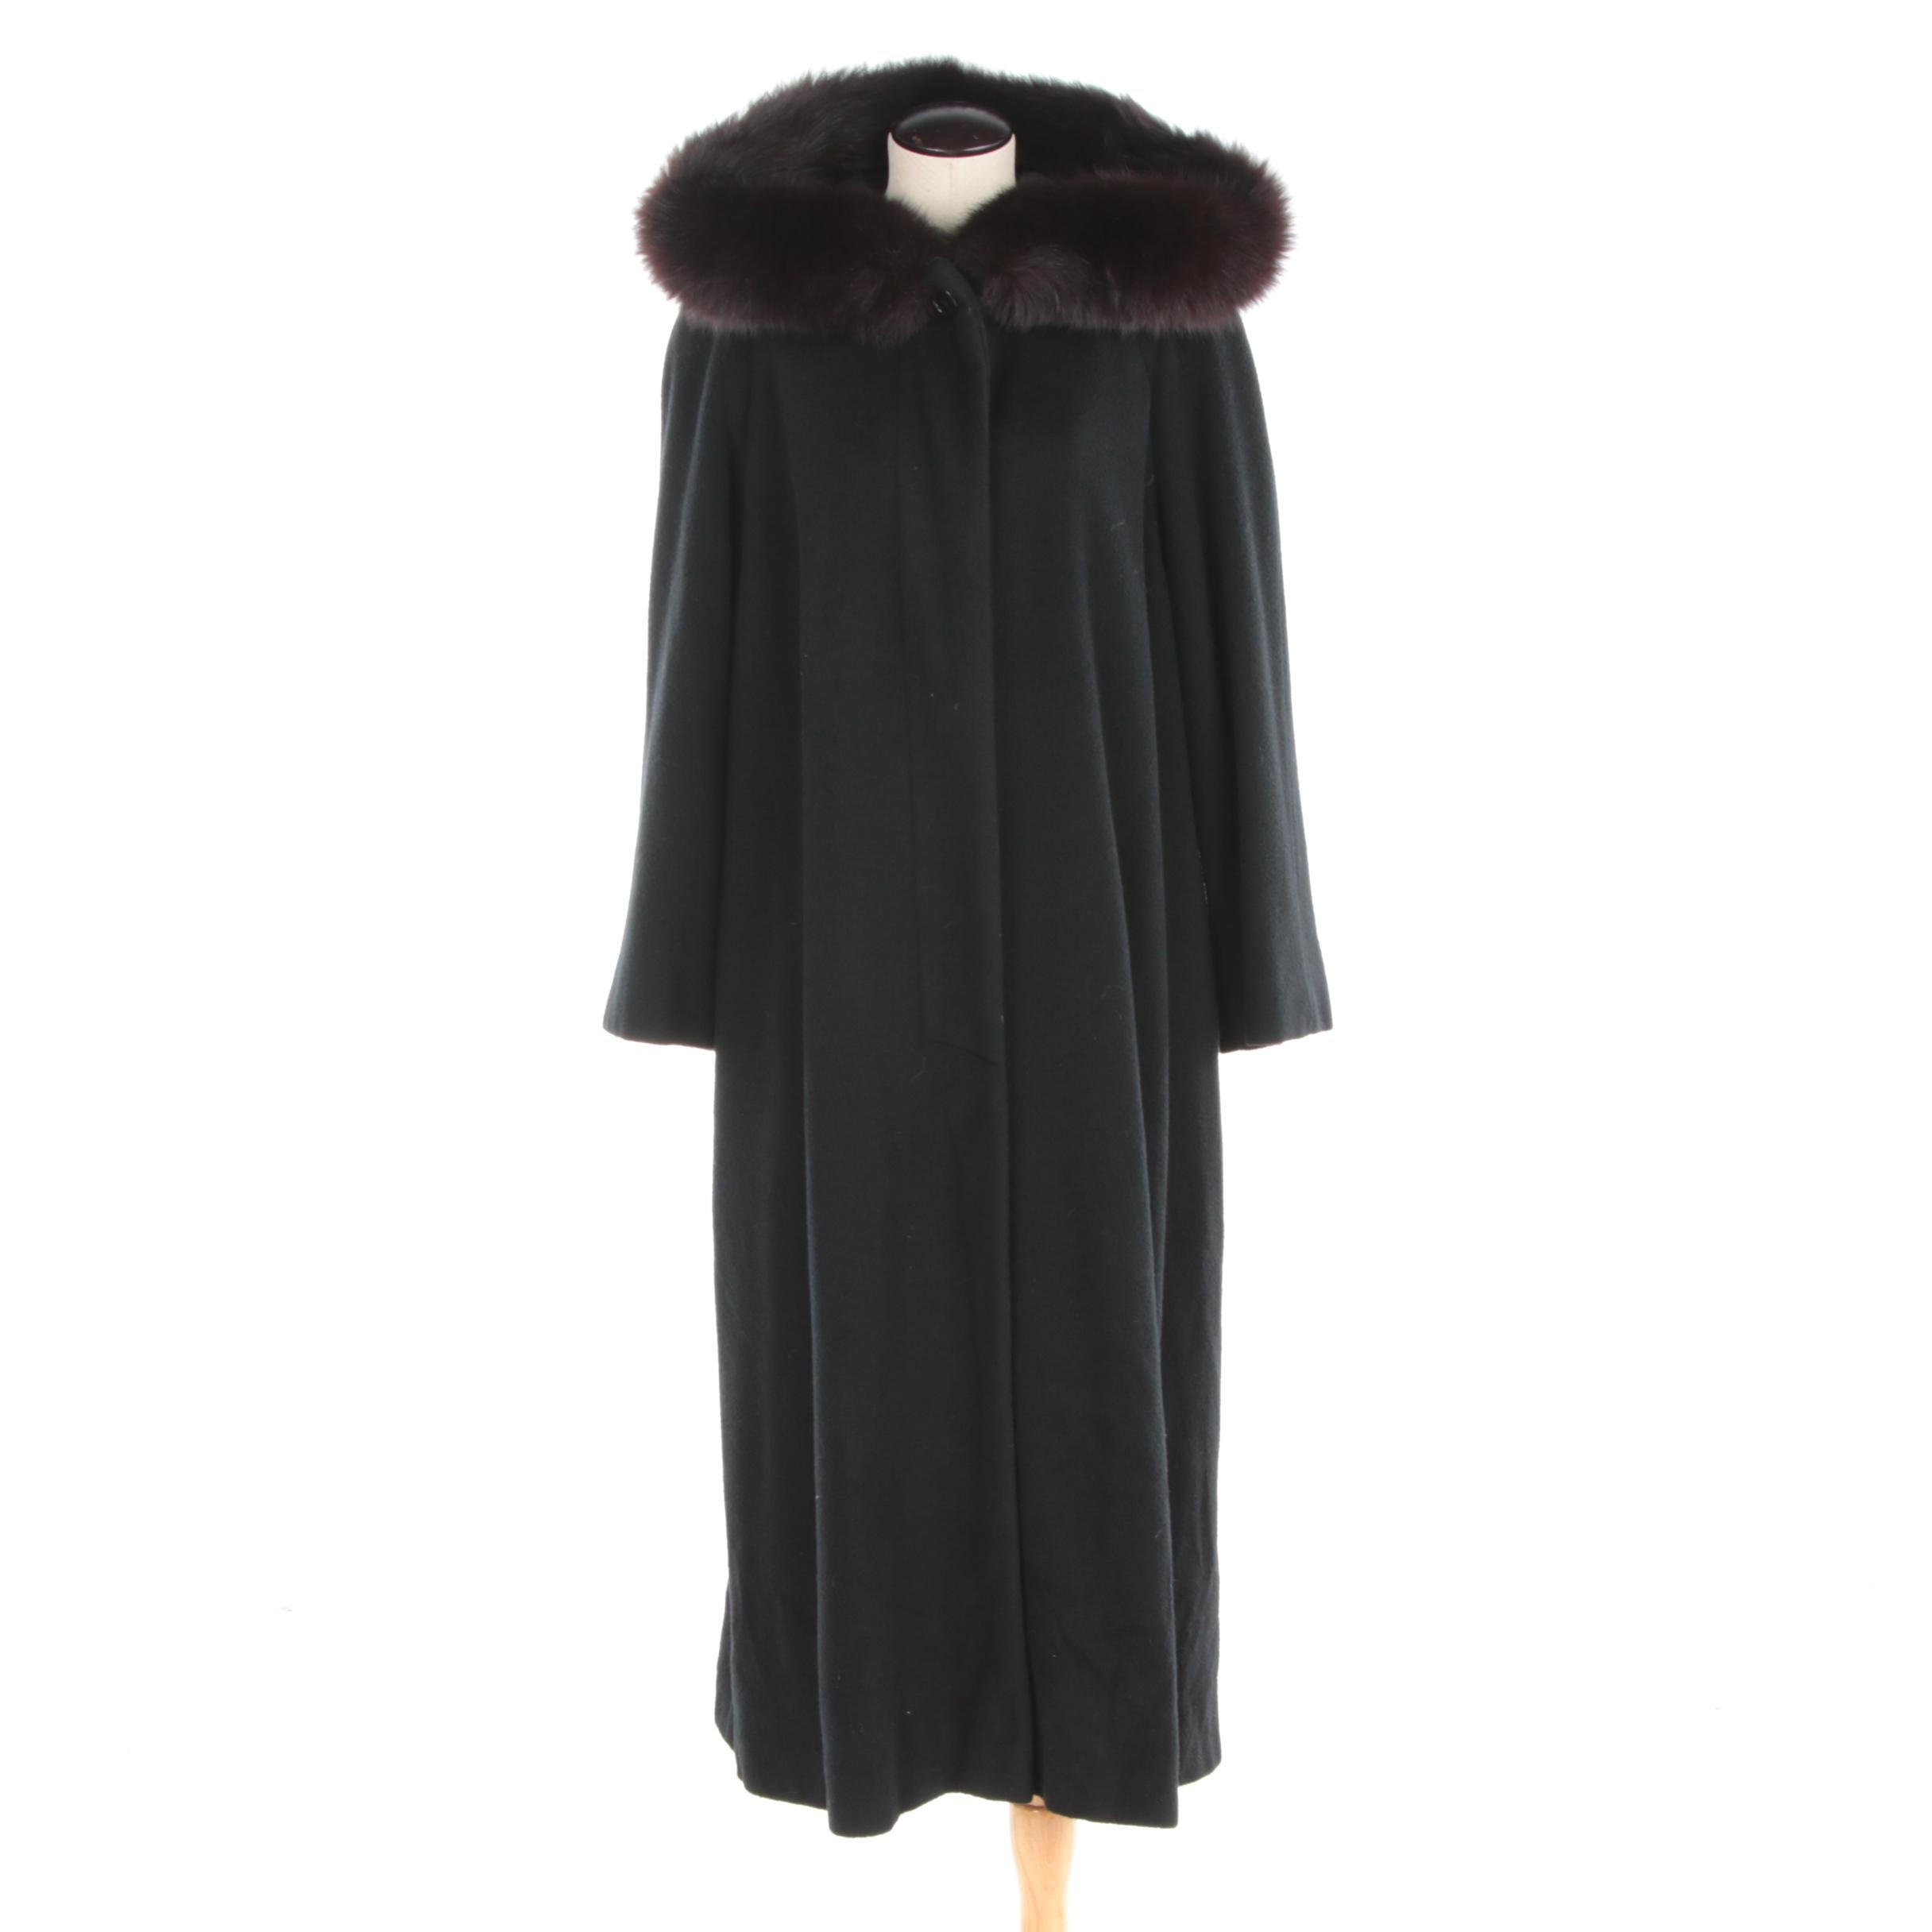 Women's Vintage Black Cashmere Full-Length Coat with Fox Fur Trimmed Hood